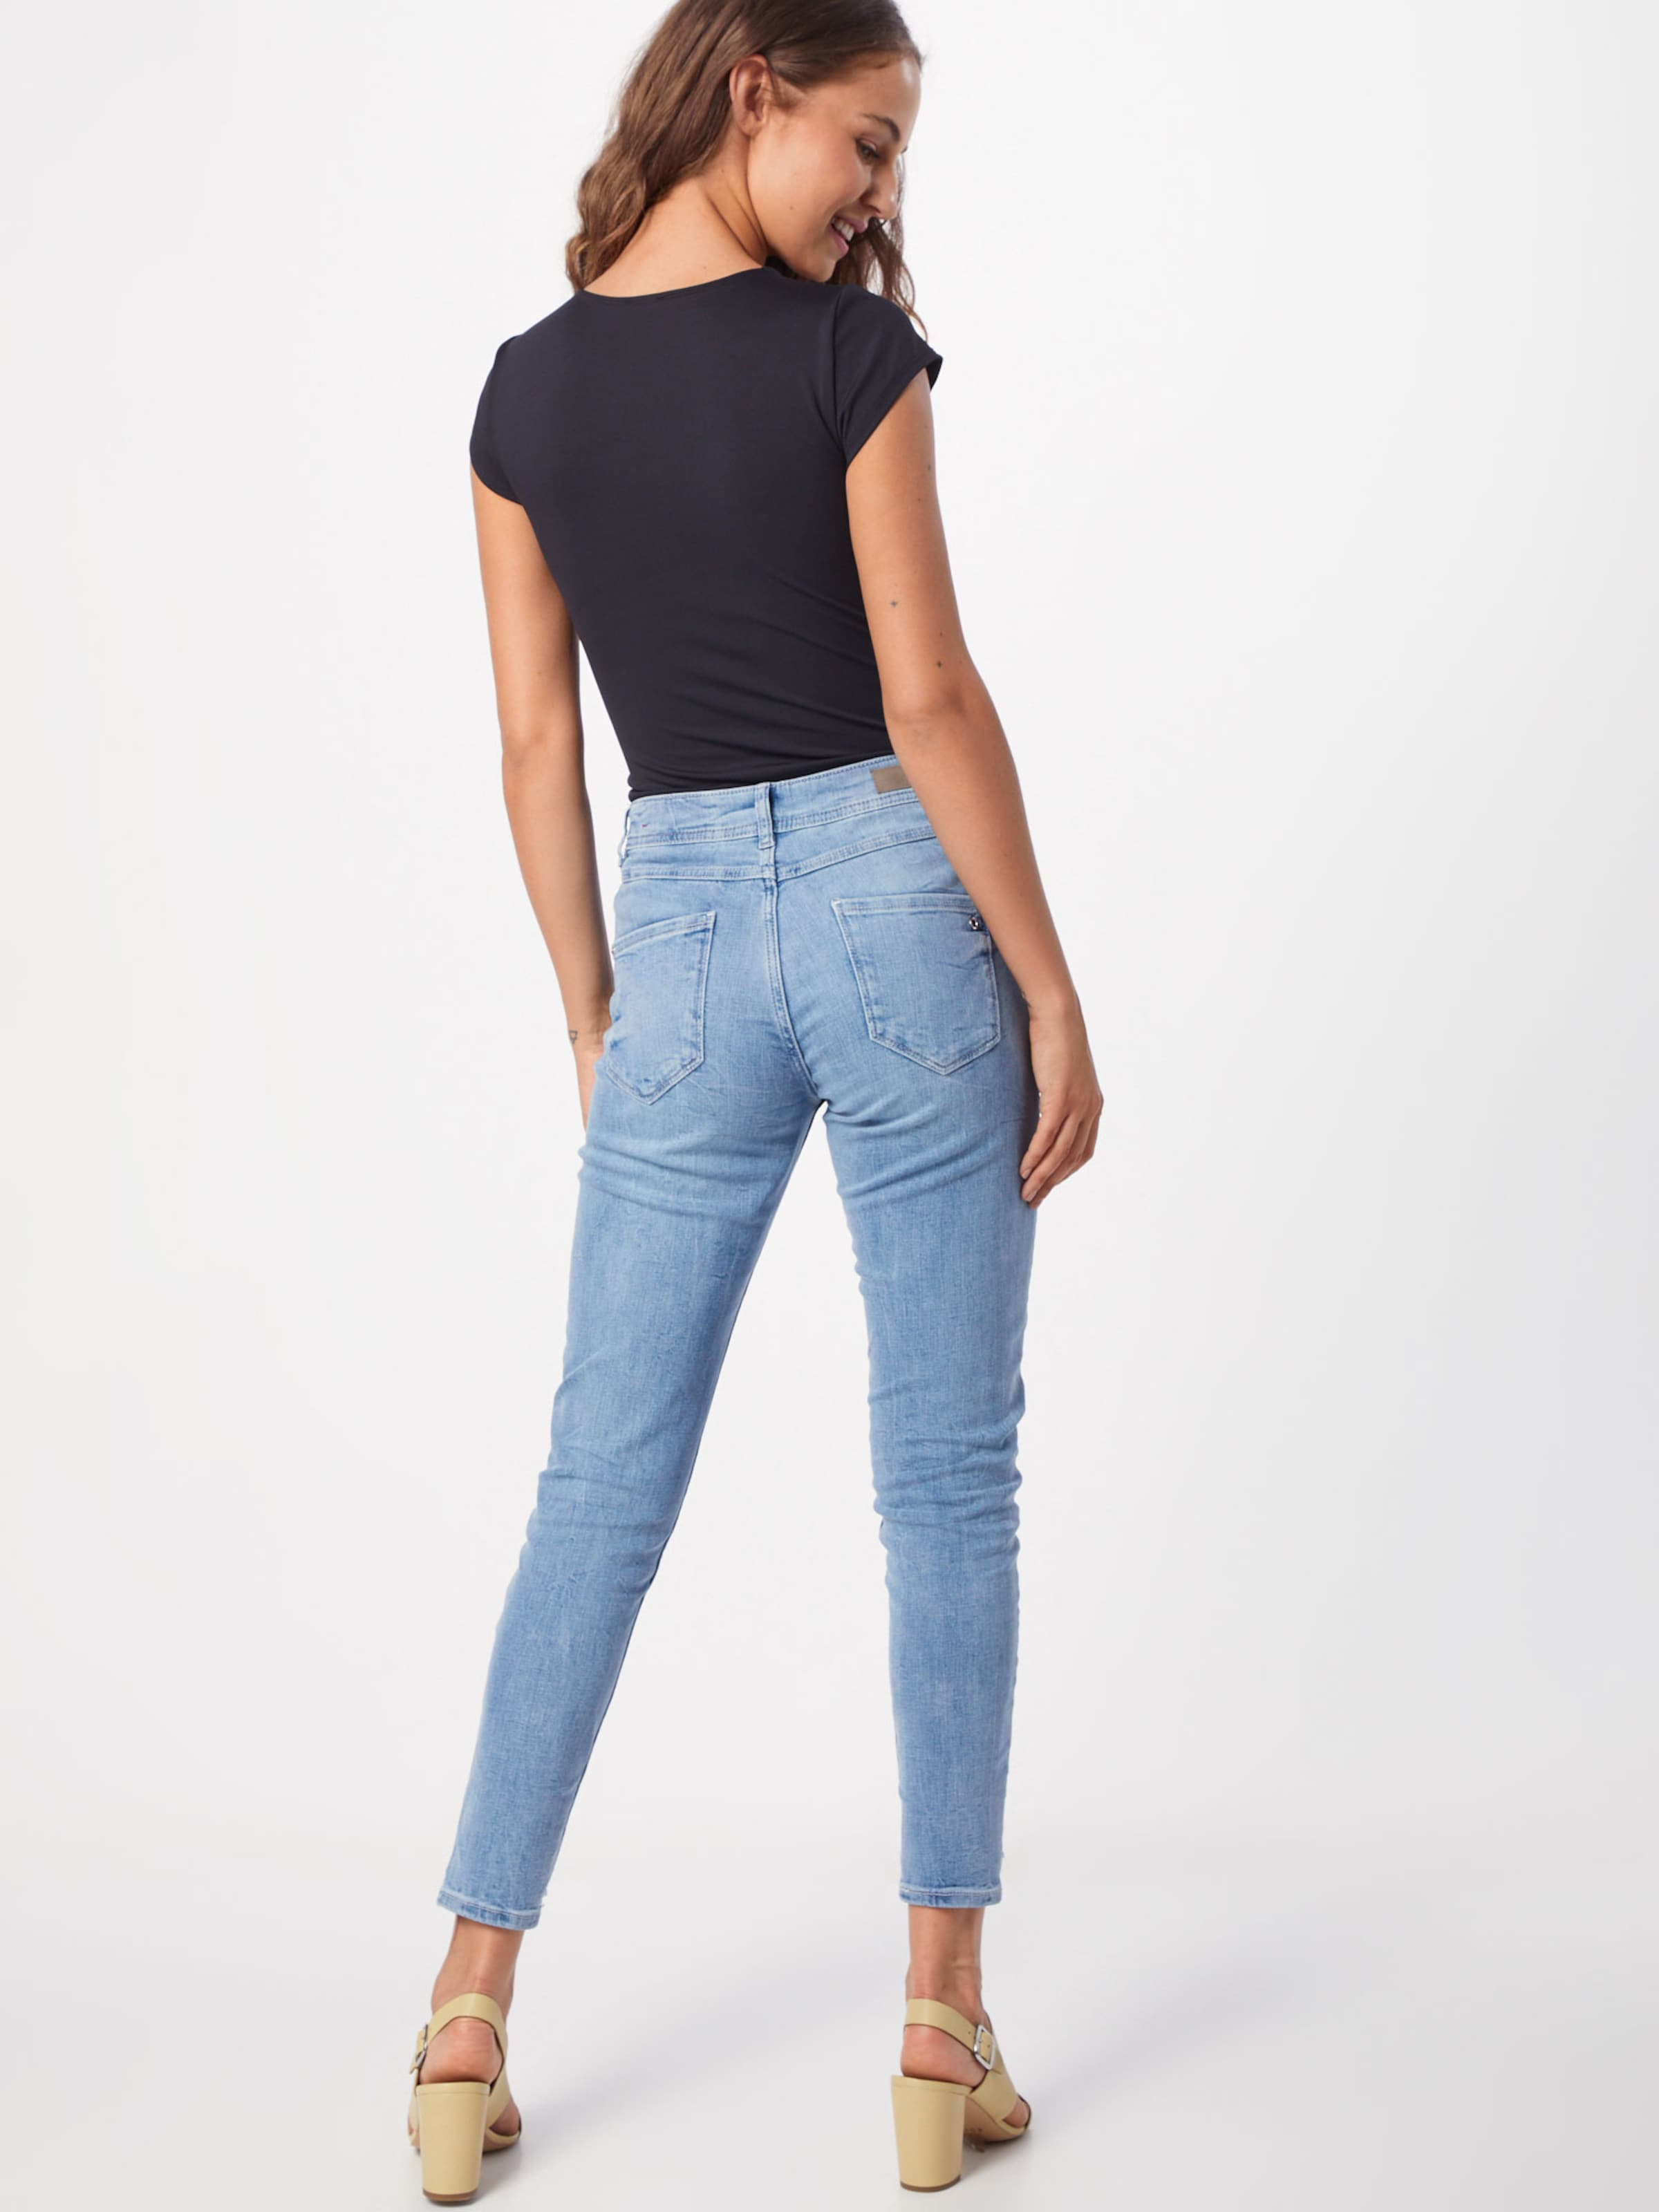 Jean En S Red Denim Bleu oliver Label VqzLSUMpG